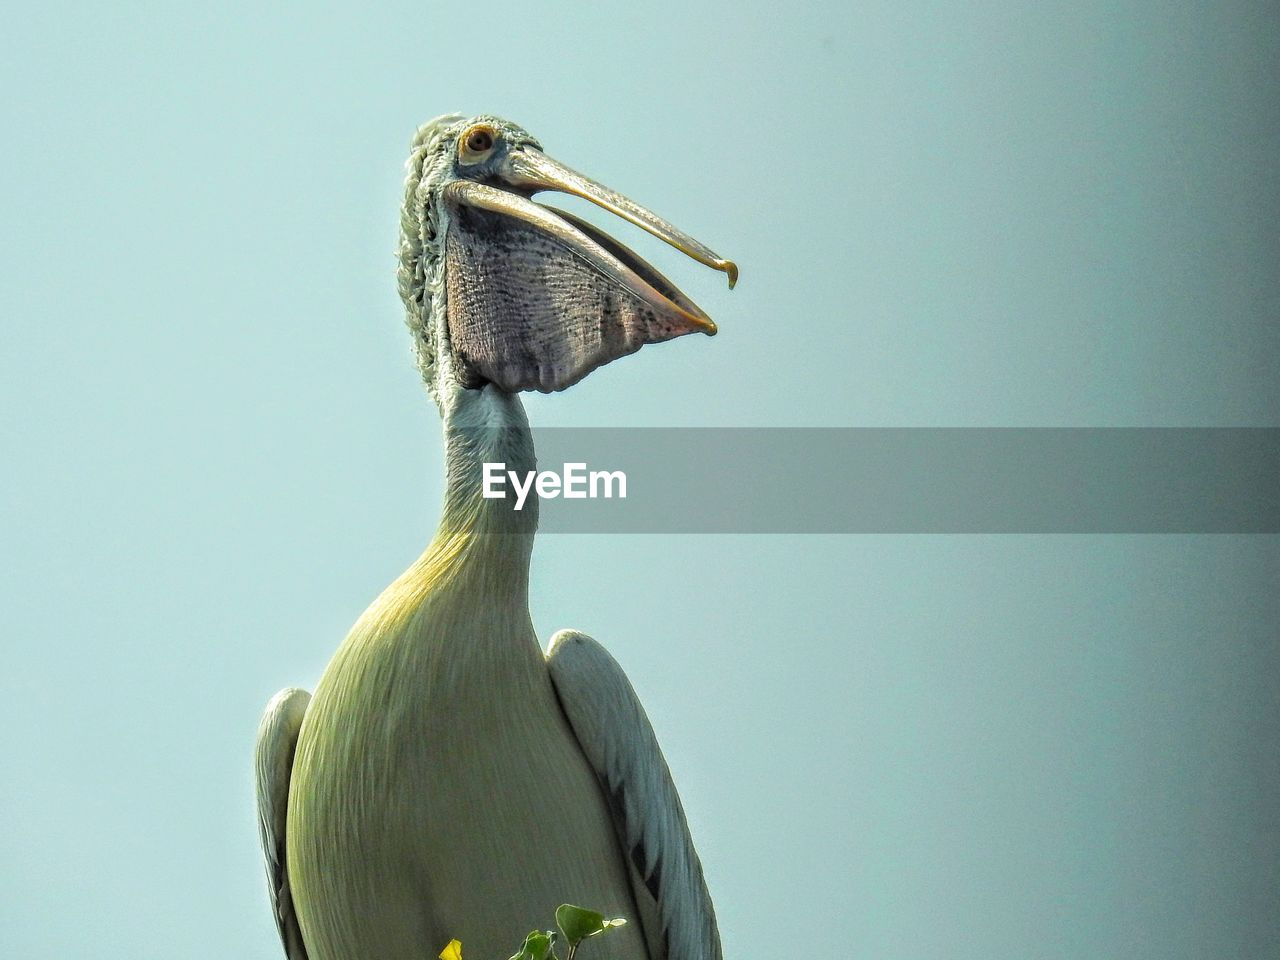 bird, animals in the wild, vertebrate, animal themes, one animal, animal wildlife, sky, animal, beak, clear sky, no people, copy space, nature, day, low angle view, close-up, outdoors, blue, perching, looking, animal head, animal neck